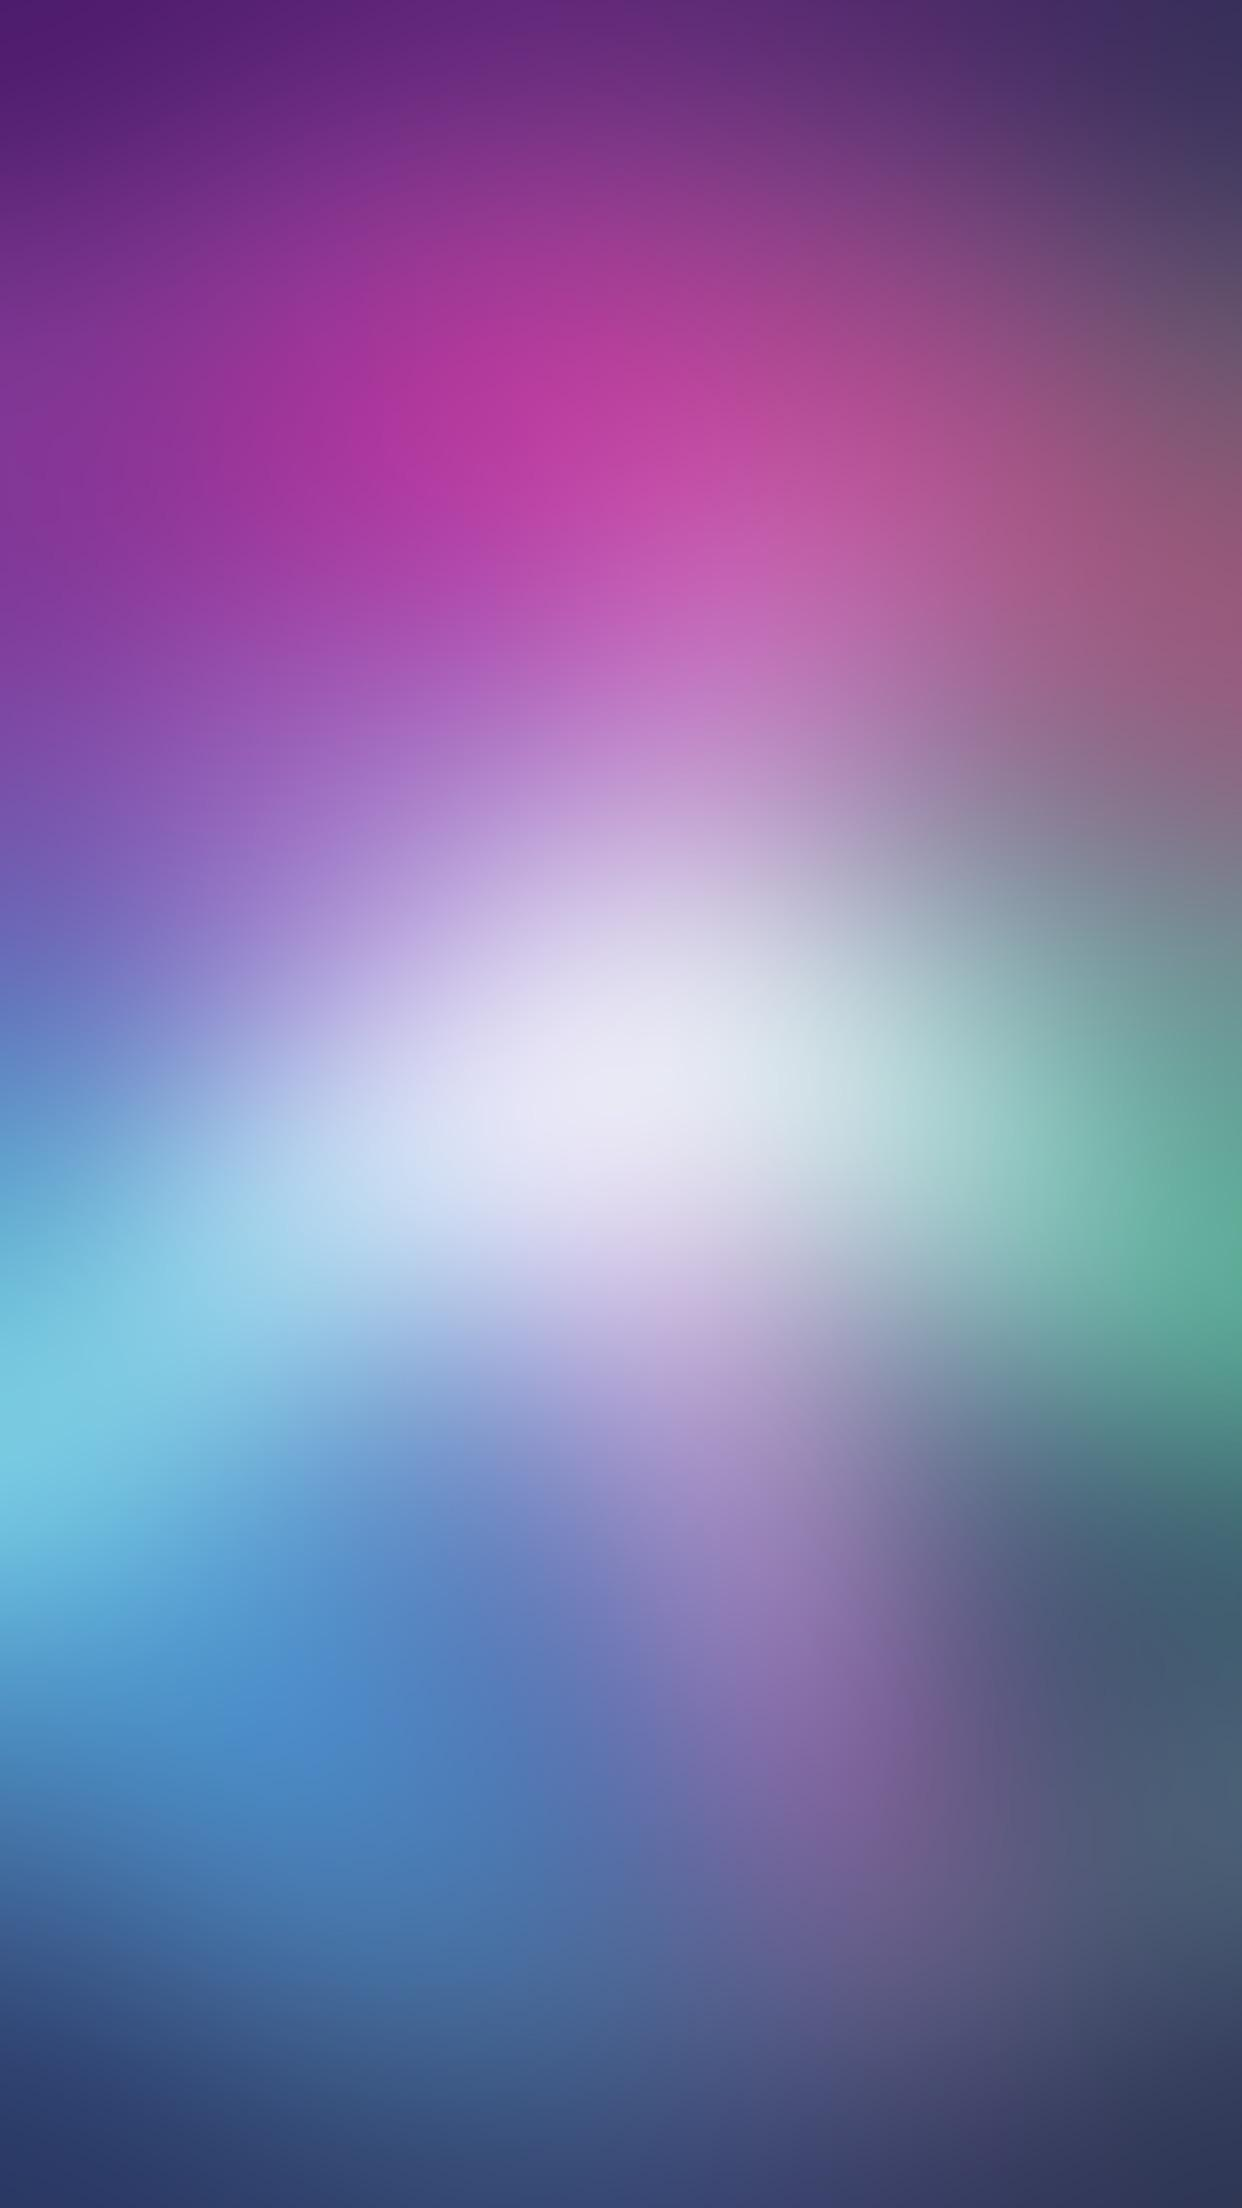 Iphone Gradient Wallpaper Posted By Christopher Walker